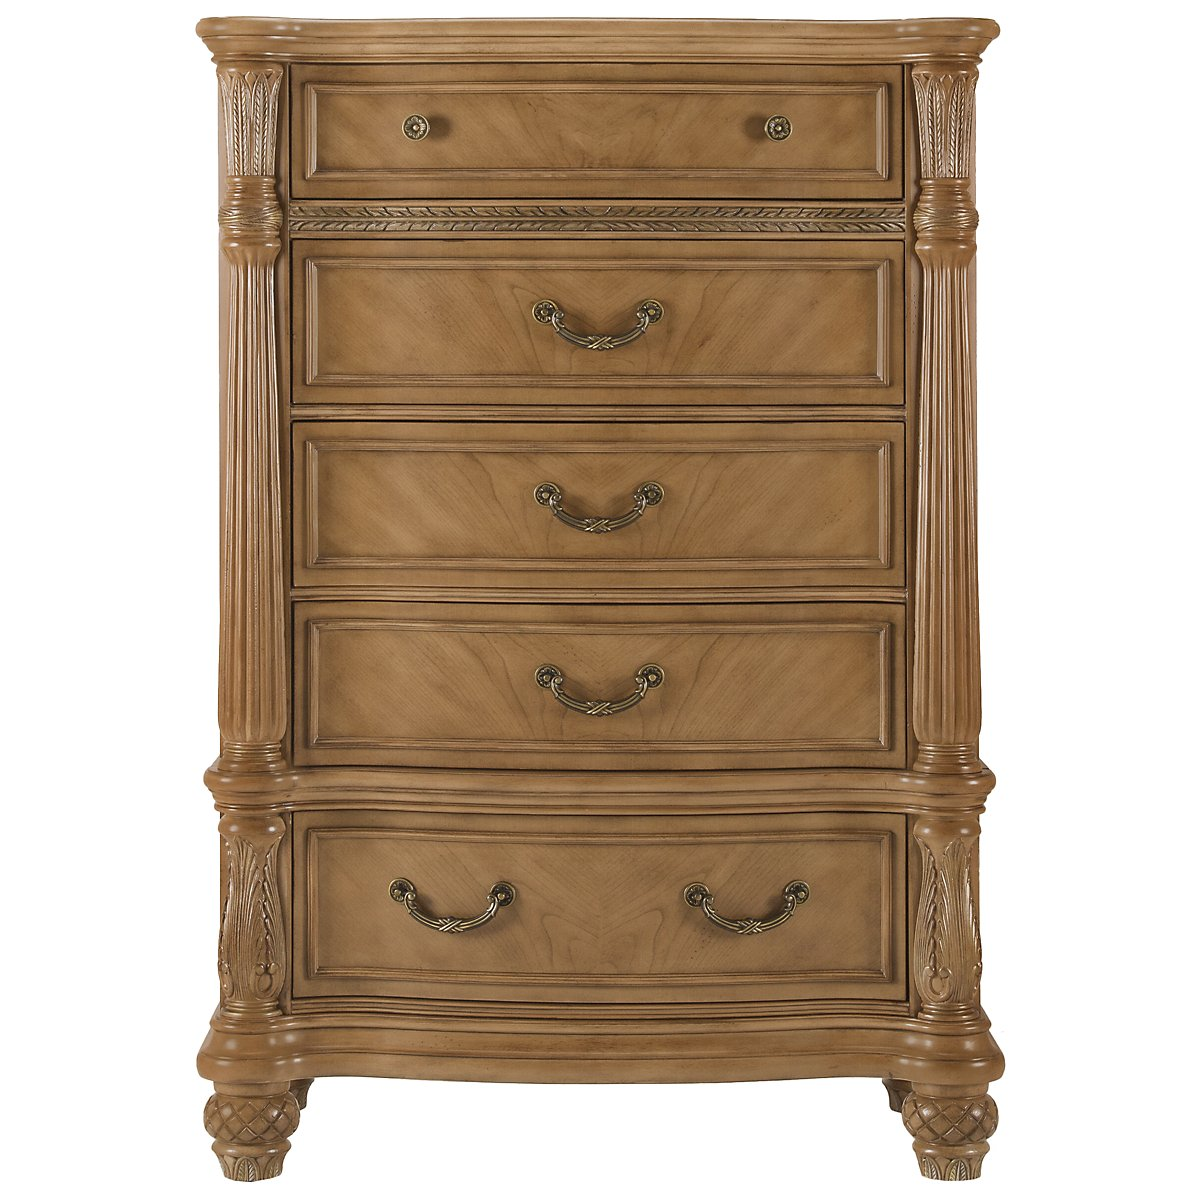 Tradewinds Light Tone Drawer Chest